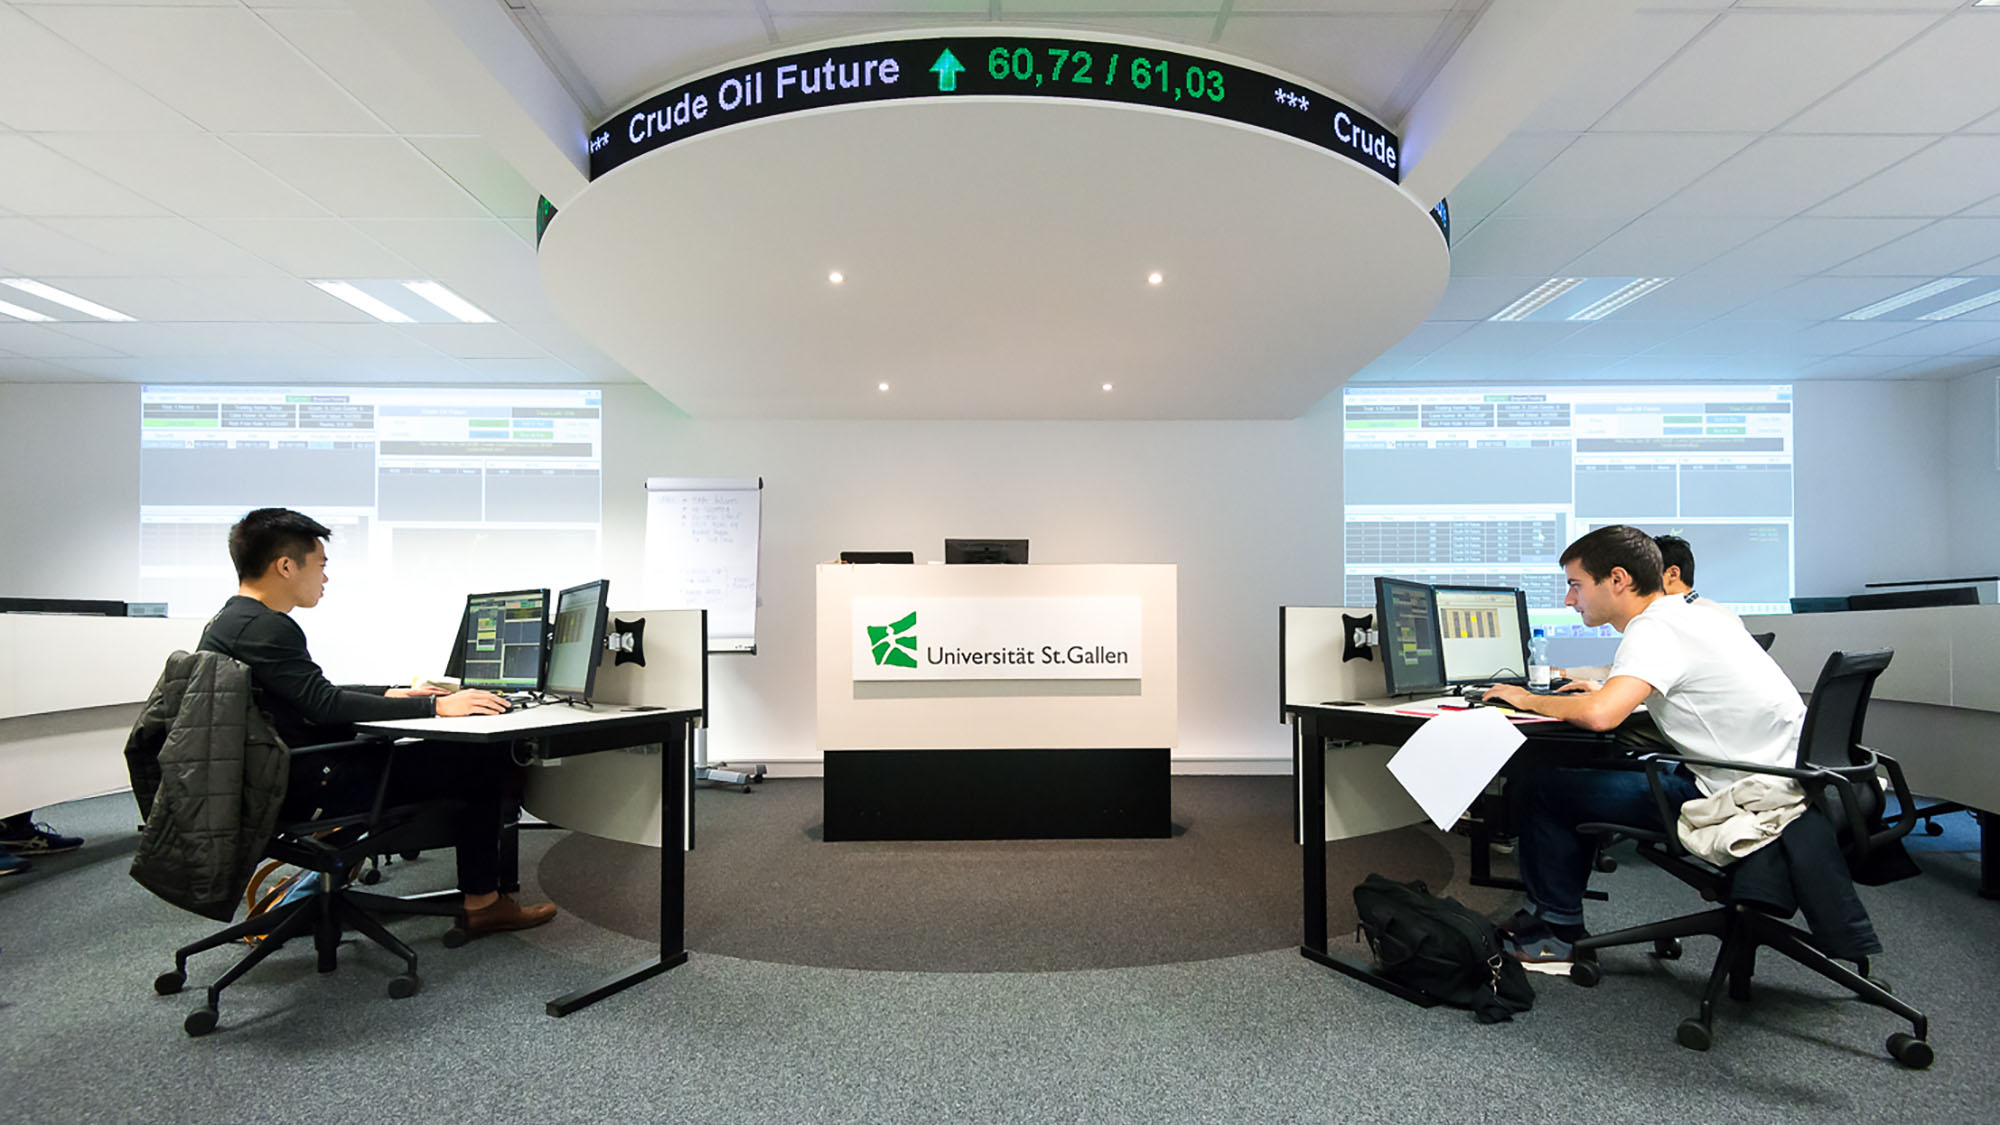 University of St.Gallen's Trading Room